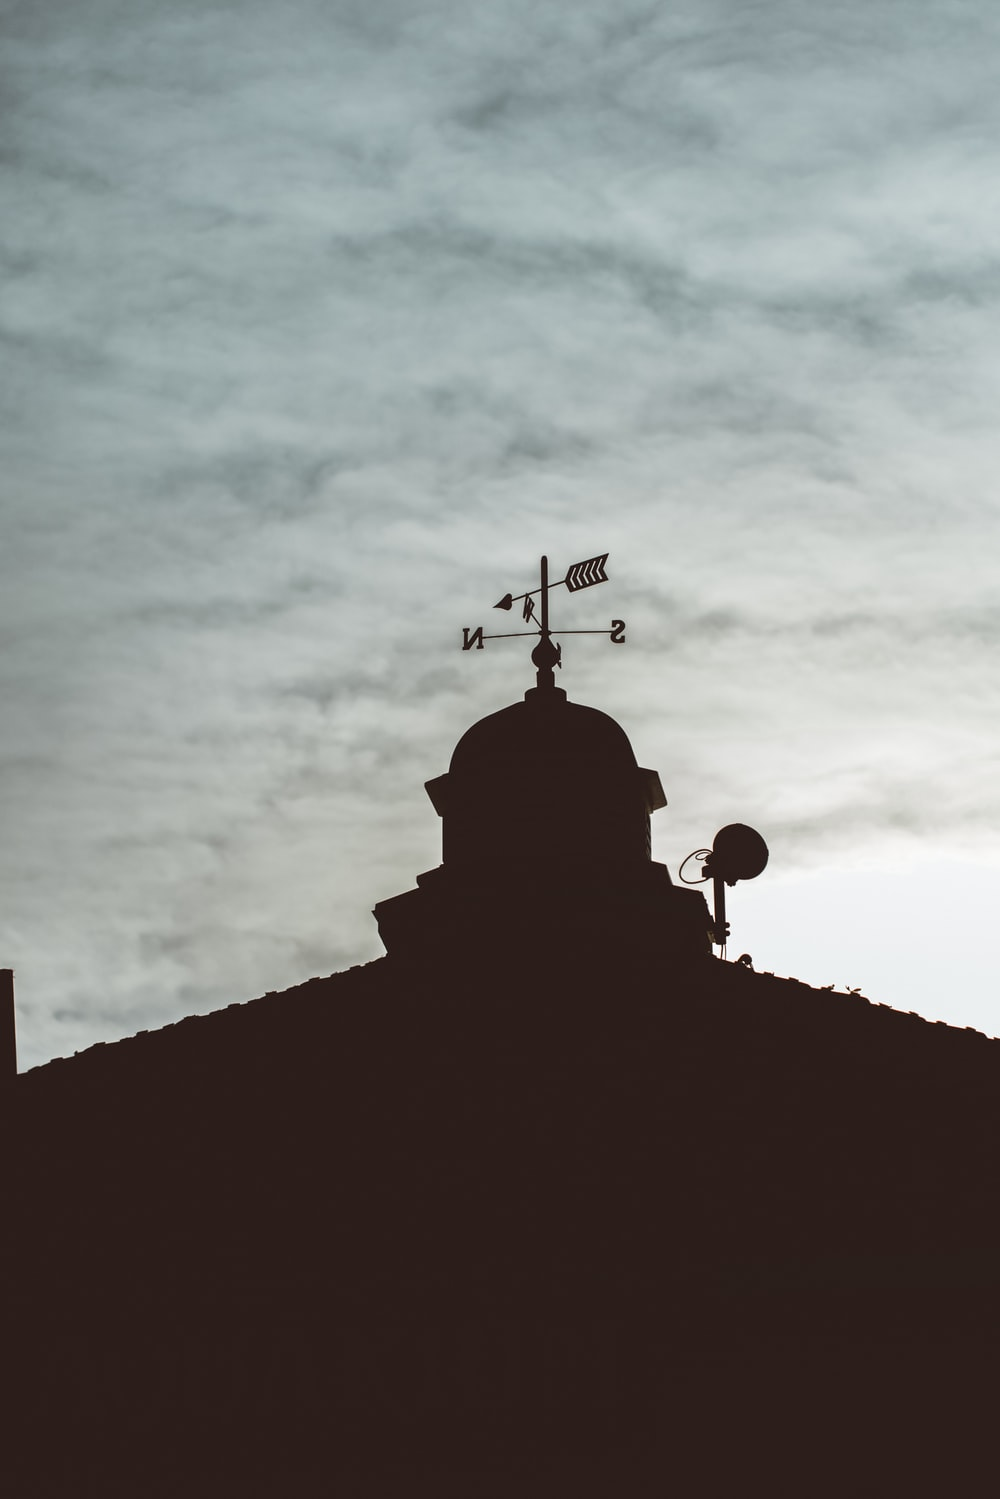 silhouette of cross on top of building